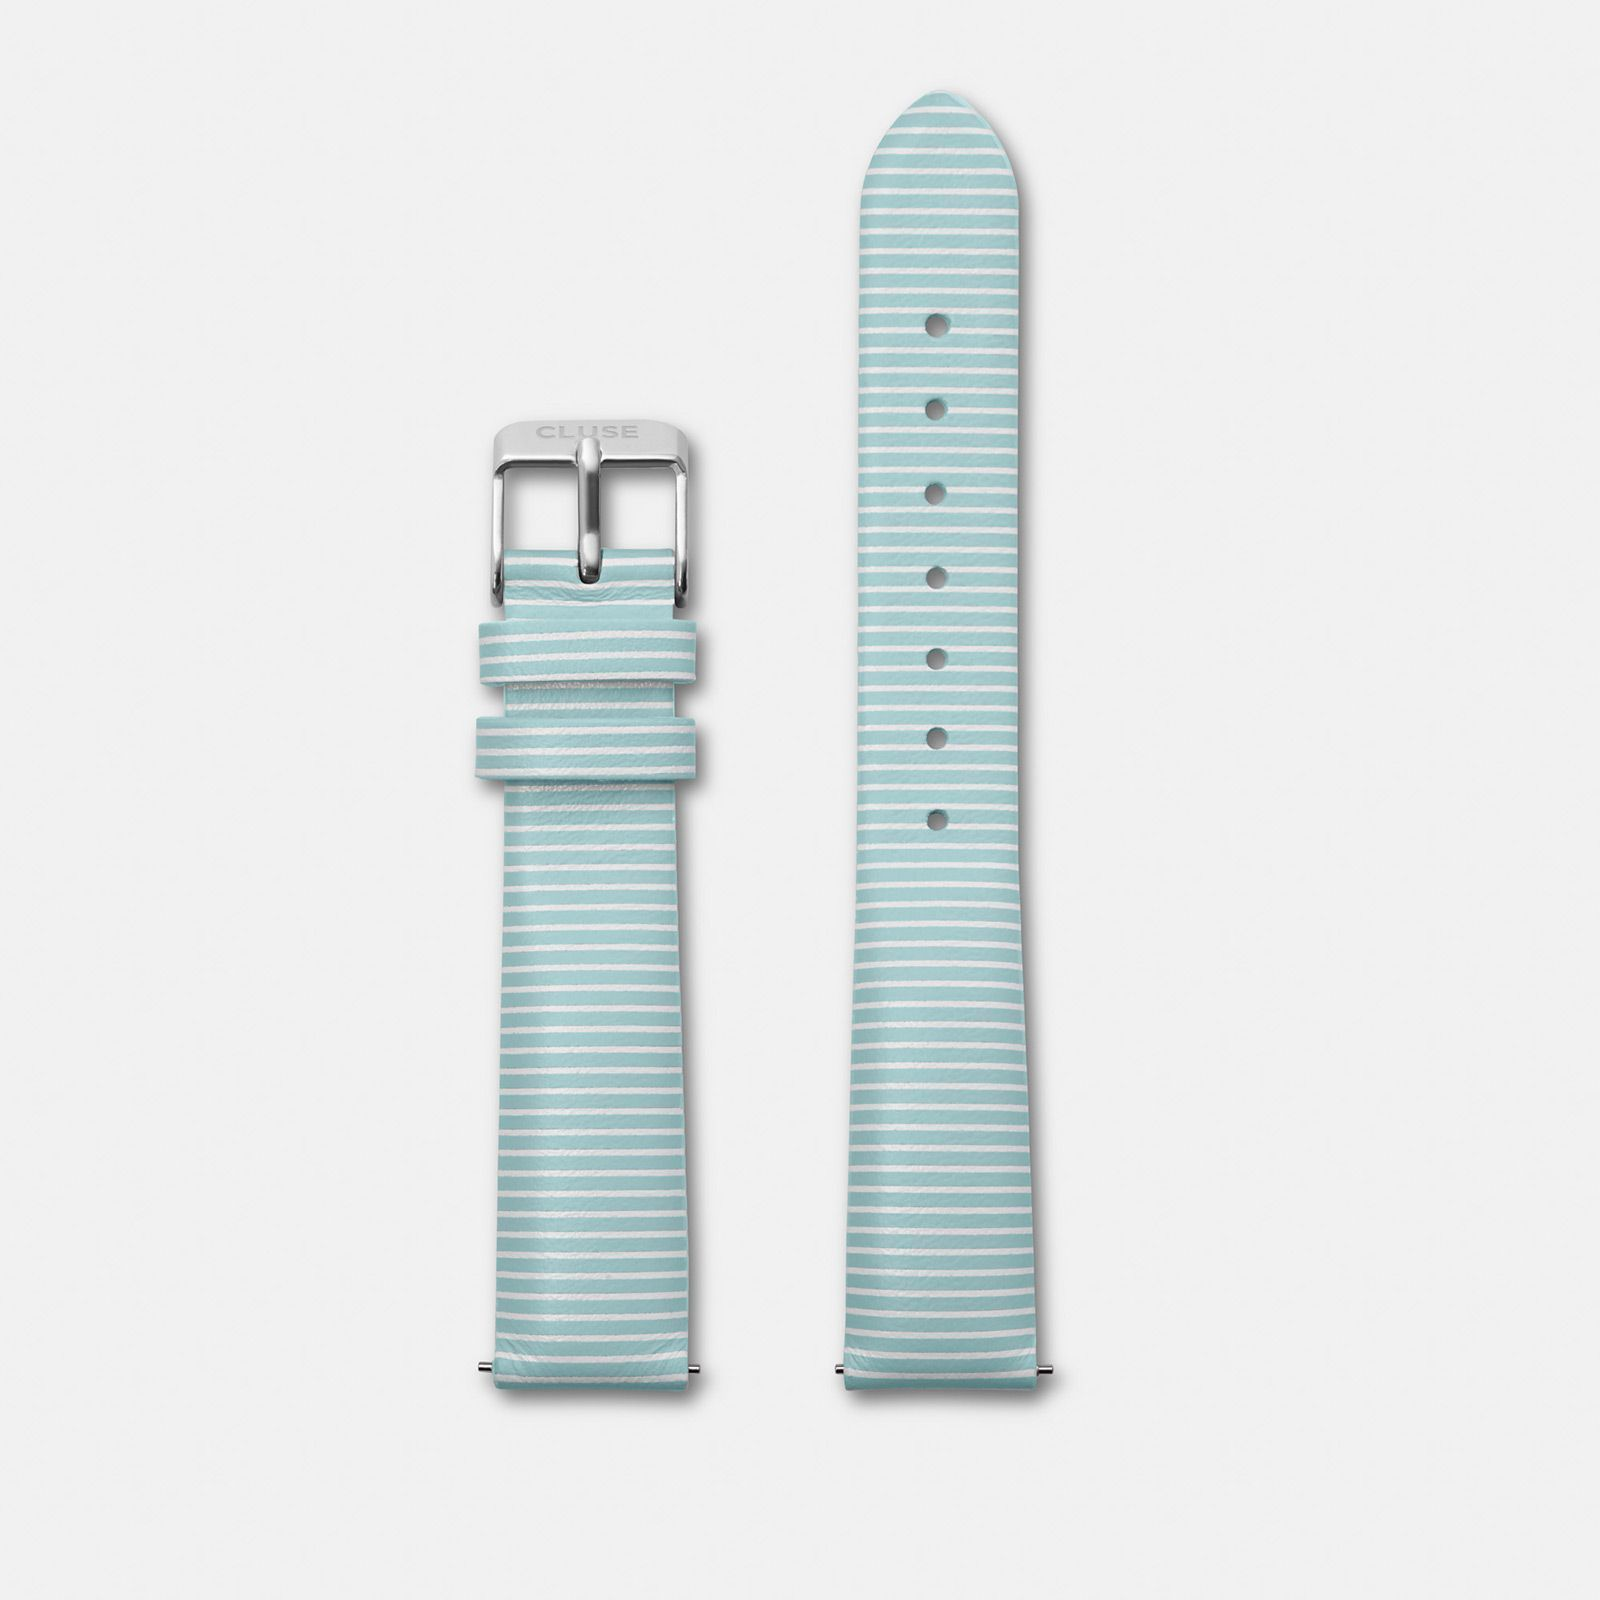 CLUSE 16 mm Strap Sky Blue Stripes/Silver CLS361 - strap